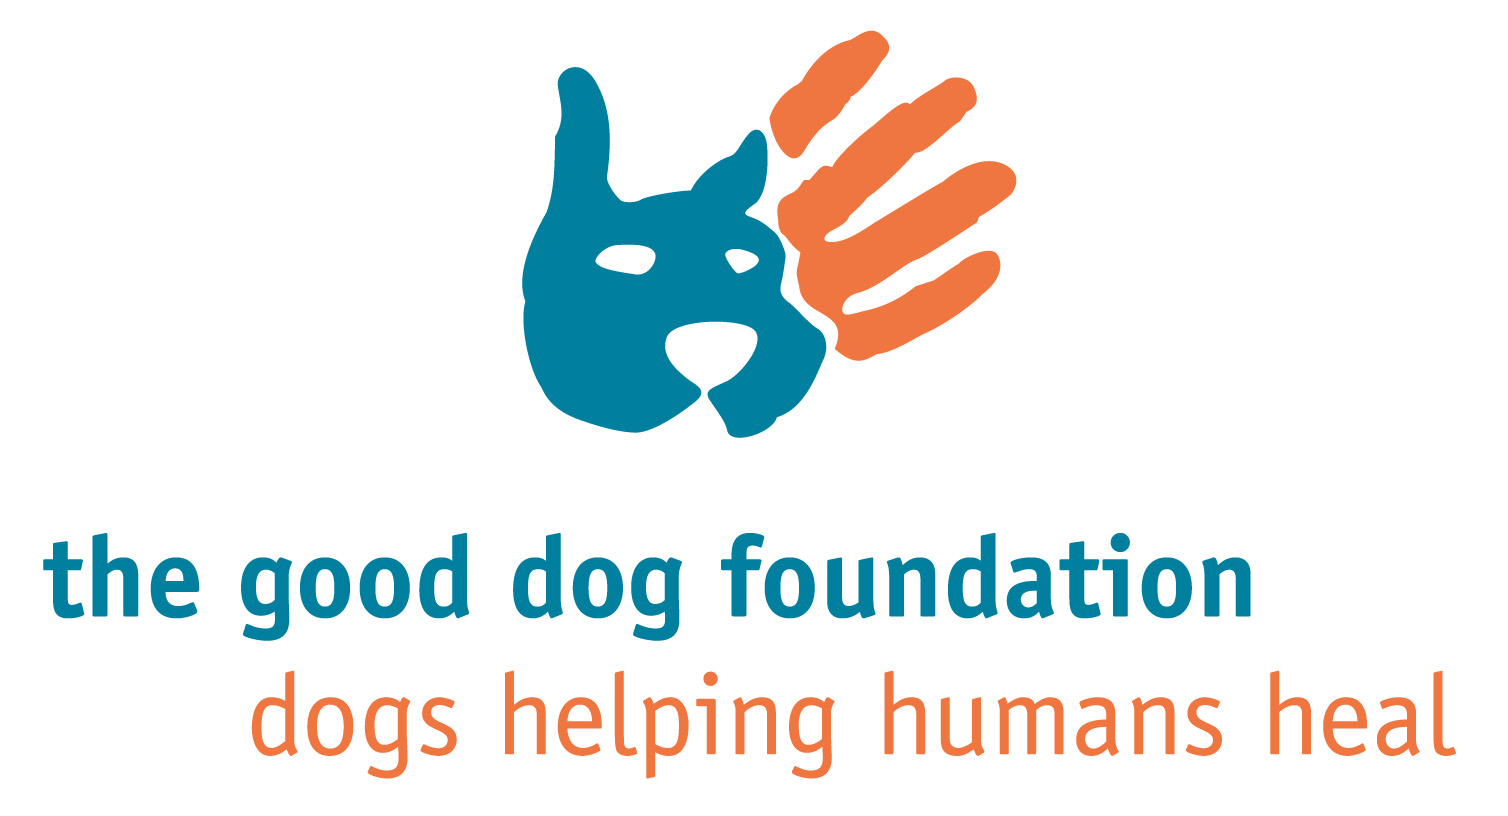 pet pantry in rye ny the good dog foundation and pet pantry warehouse